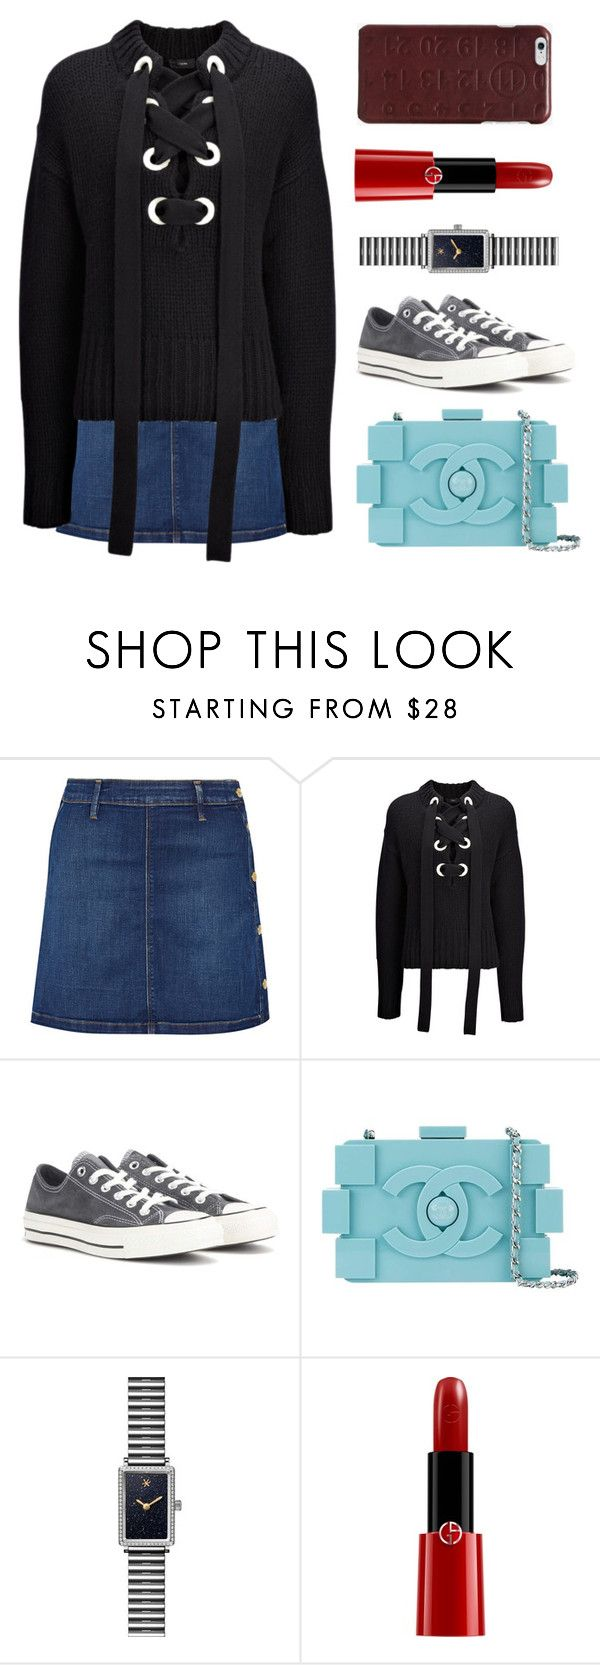 """Untitled #2484"" by claireyim ❤ liked on Polyvore featuring Frame, Joseph, Converse, Chanel, Gomelsky, Giorgio Armani and Maison Margiela"